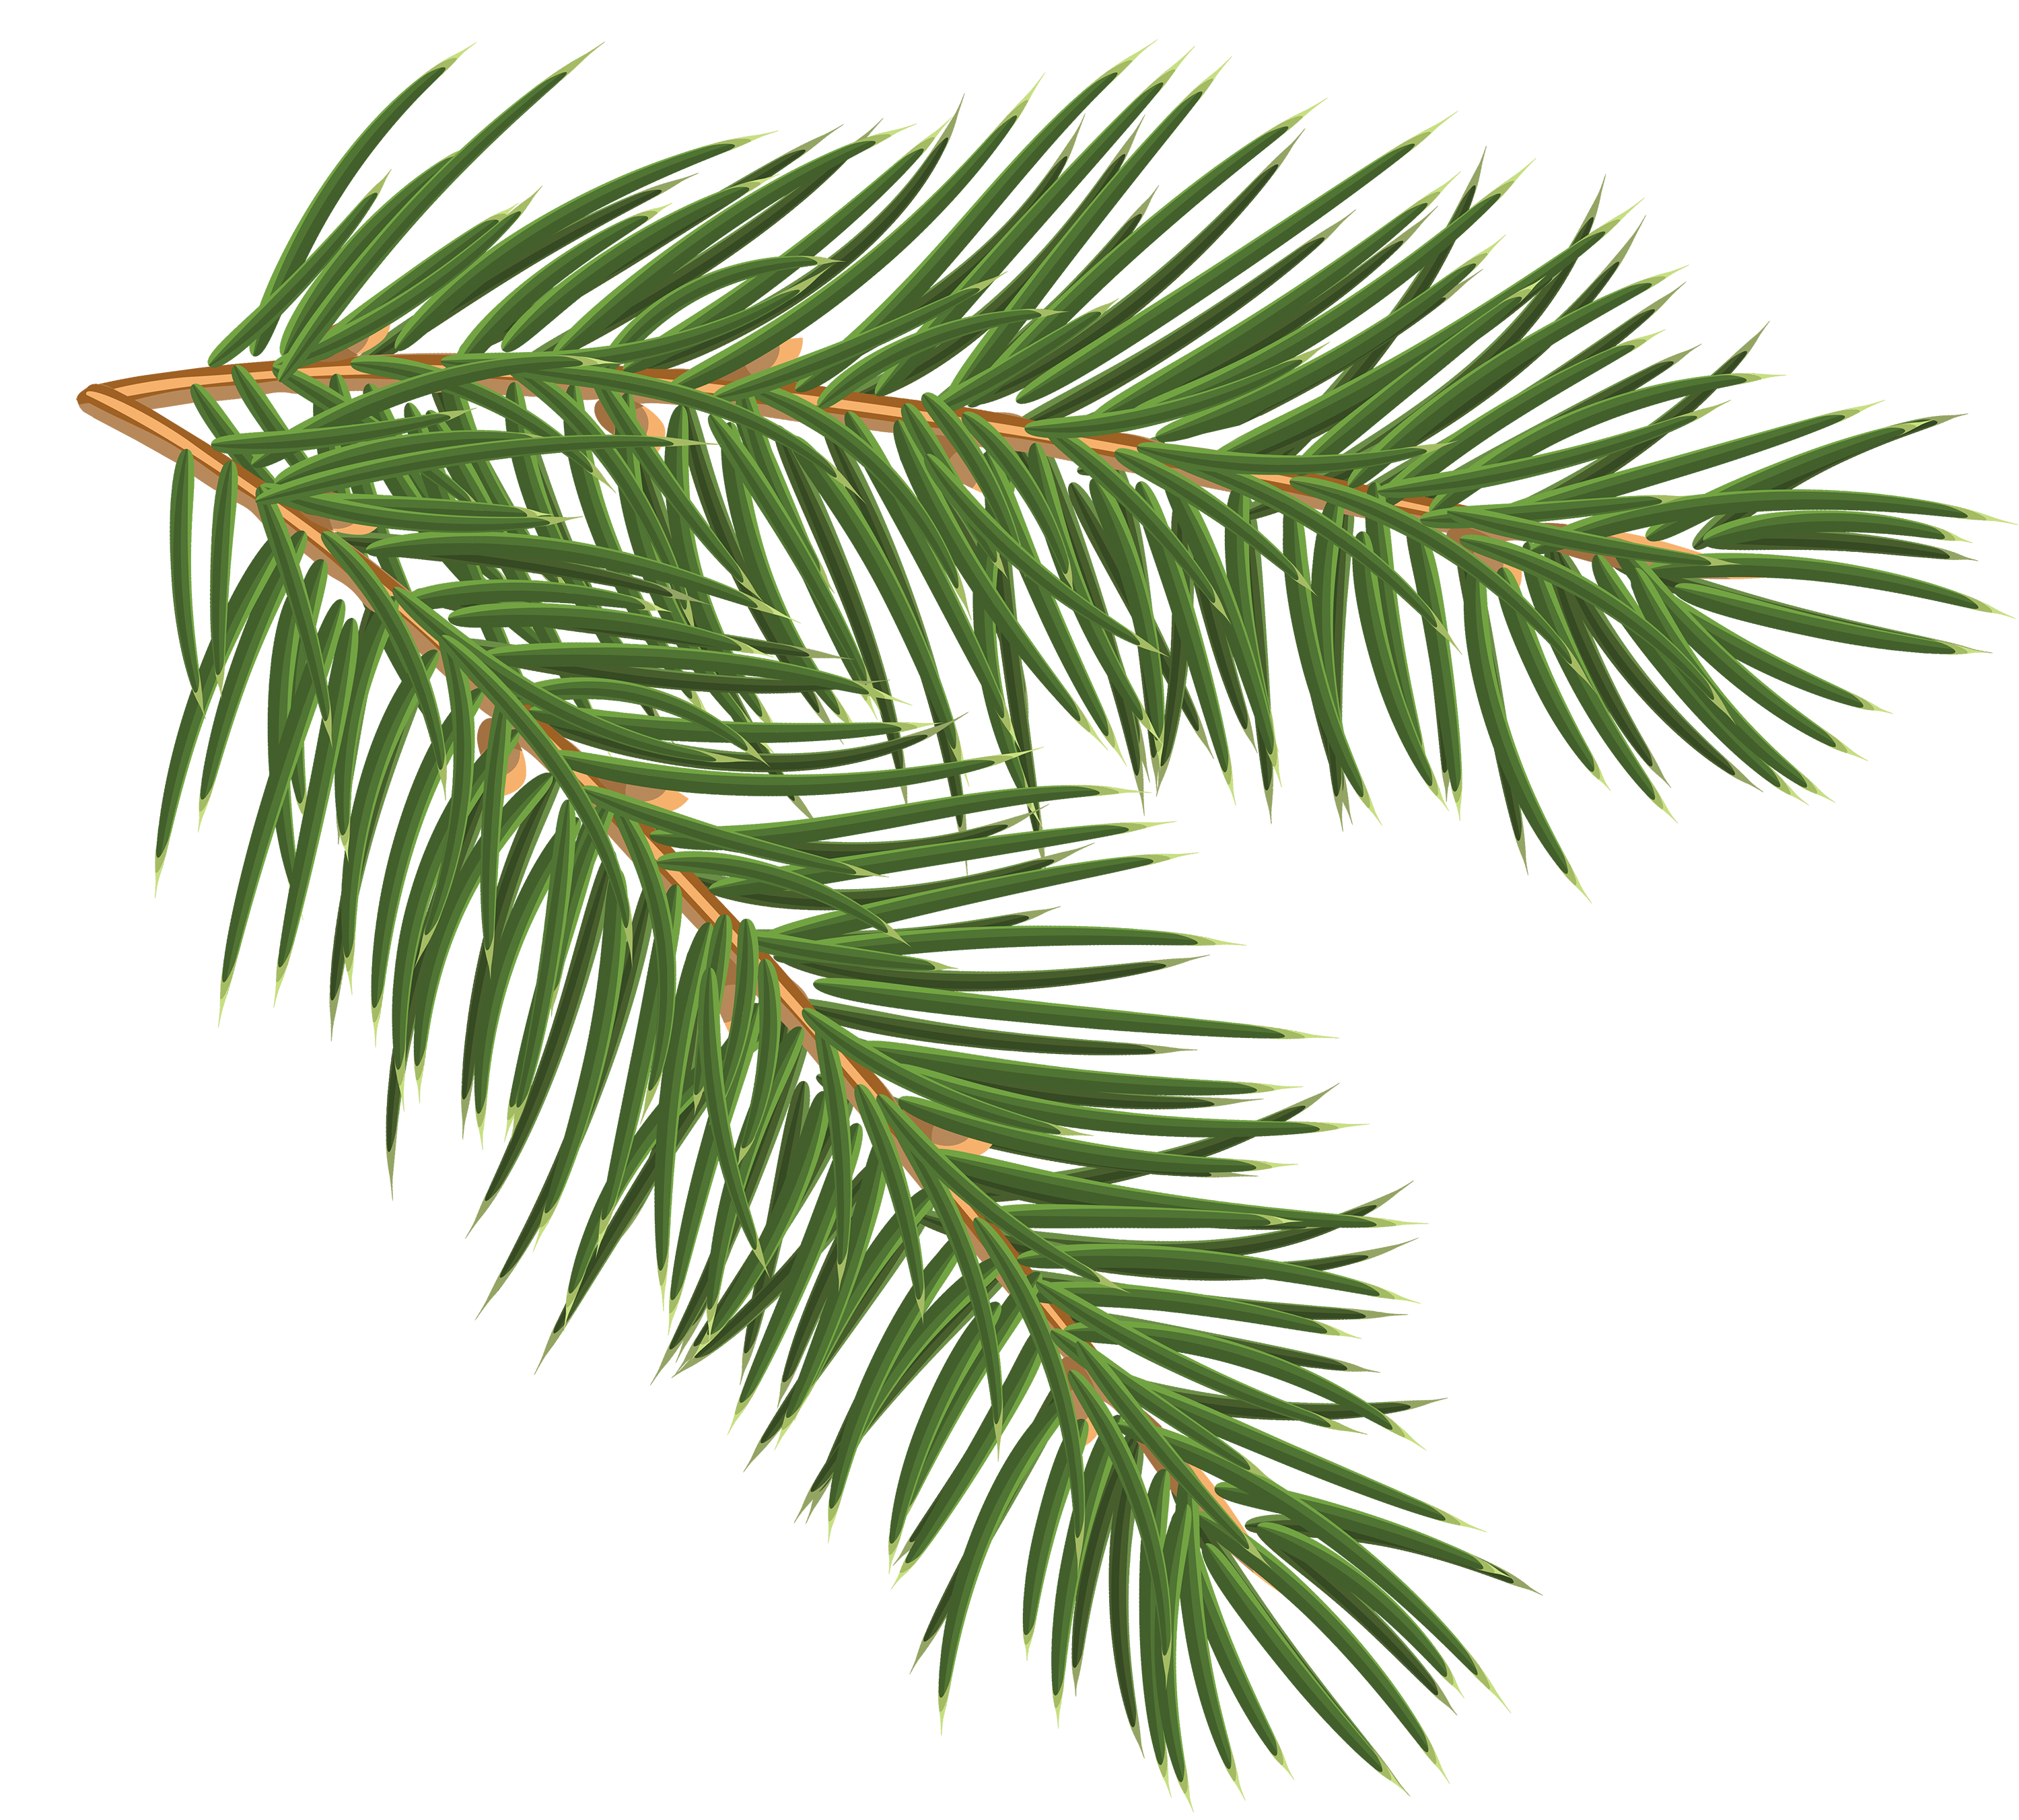 Pine branch png. Clip art image gallery